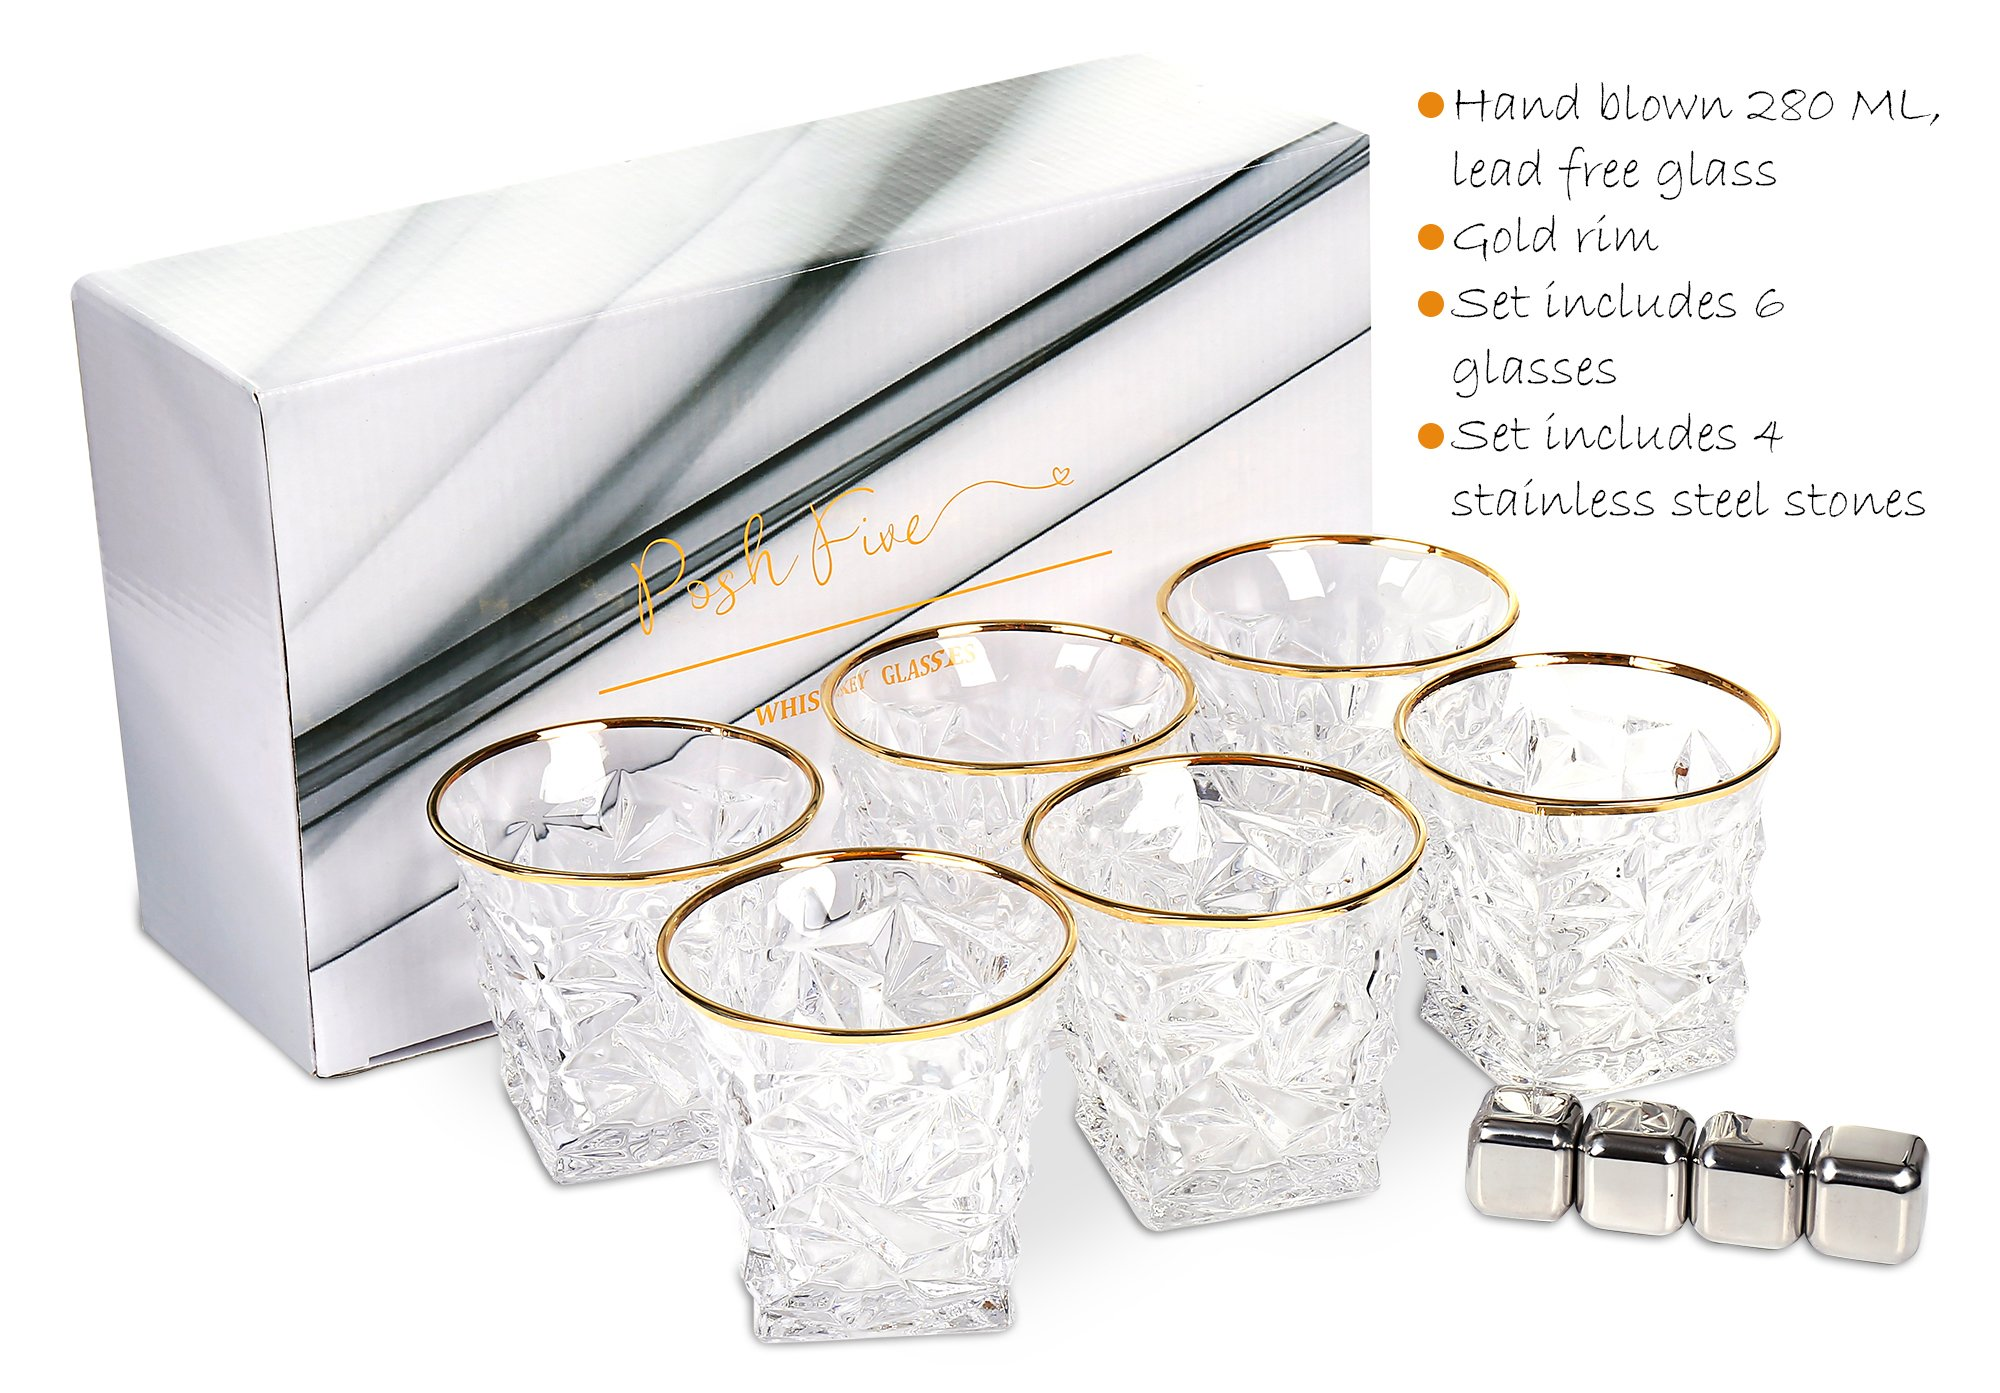 Posh Five Whiskey Glasses Set of 6 Diamond Scotch Glasses + 4 Stainless Steel Whiskey Stones by Posh Five Trading Co (Image #6)